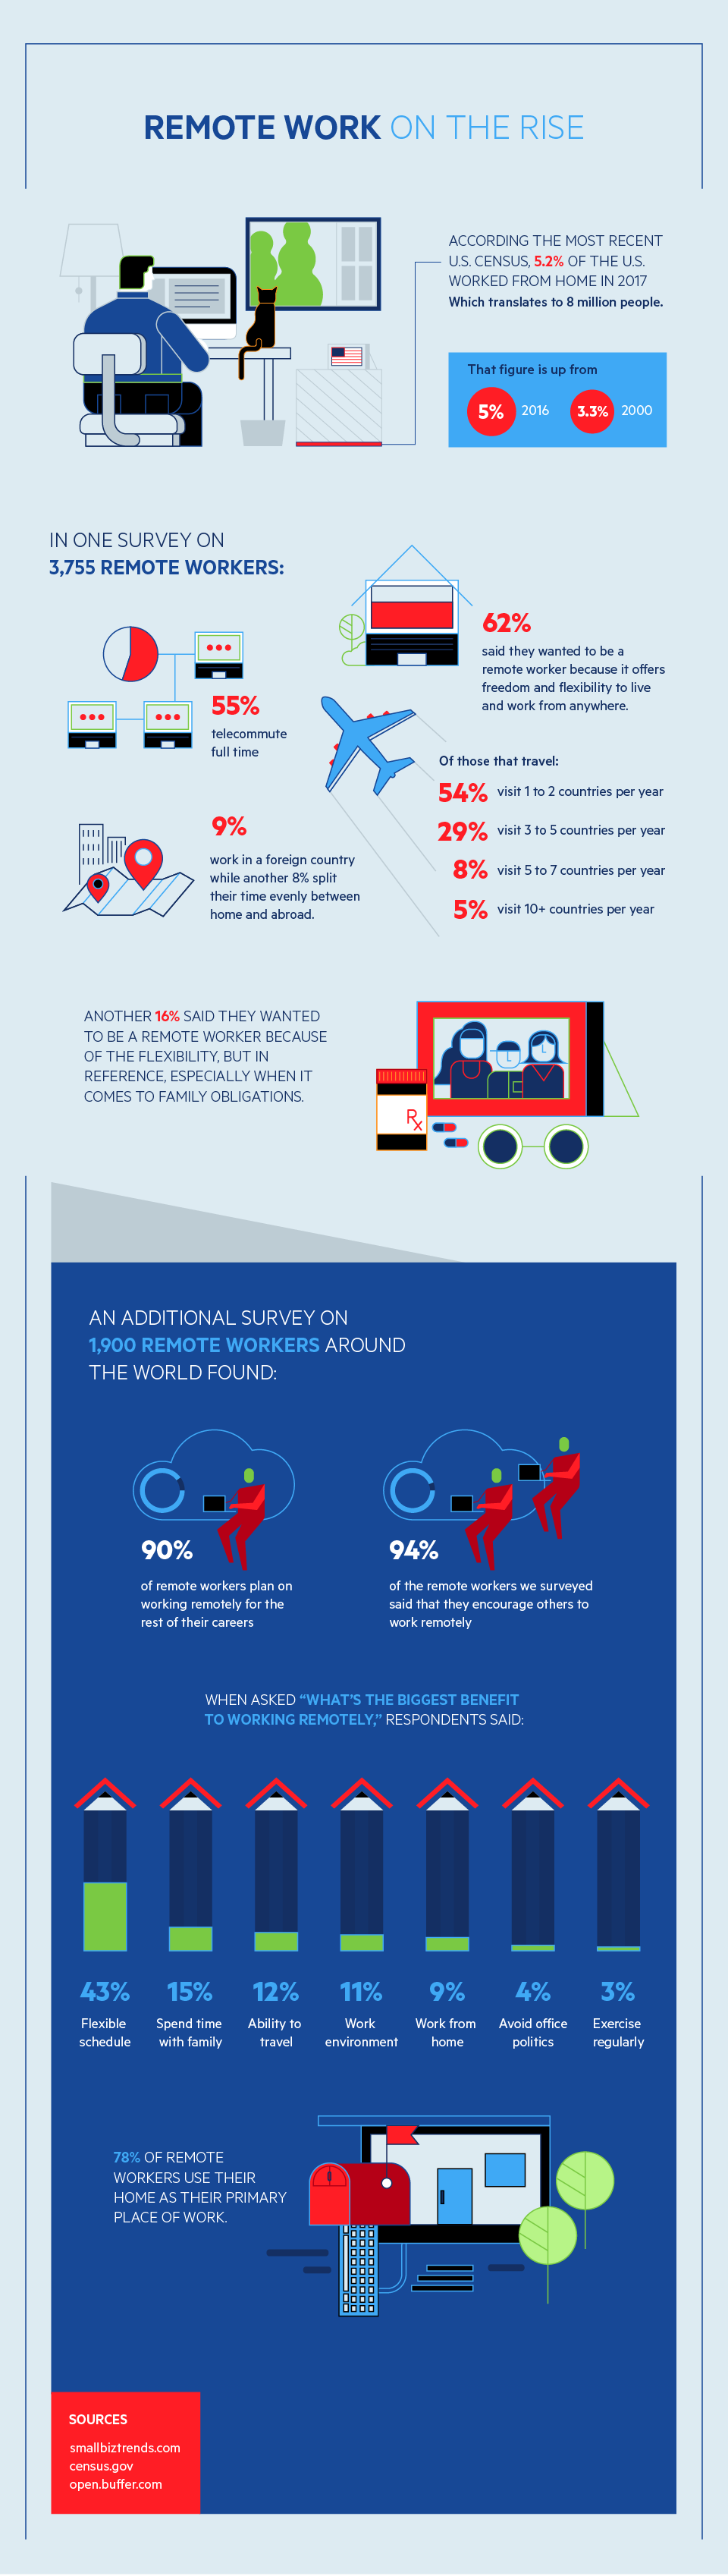 BEST APPS AND PROGRAMS TO KEEP YOUR REMOTE TEAMS CONNECTED #INFOGRAPHIC